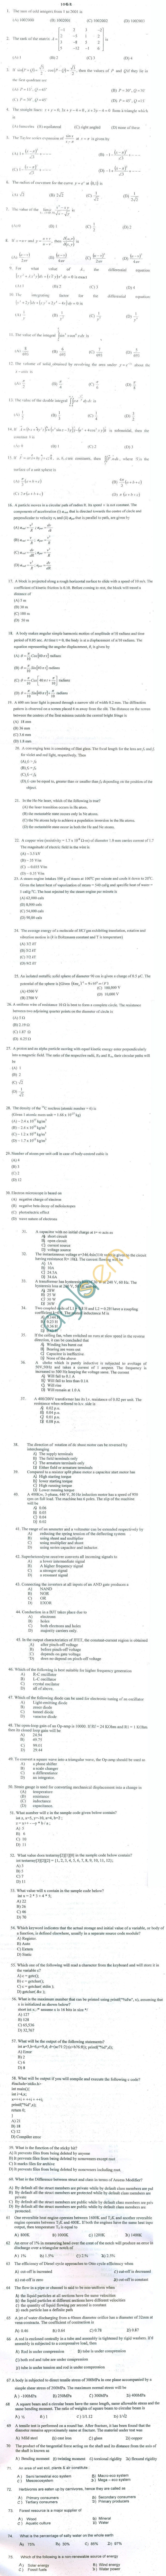 PU LEET 2012 Question Papers with Answers